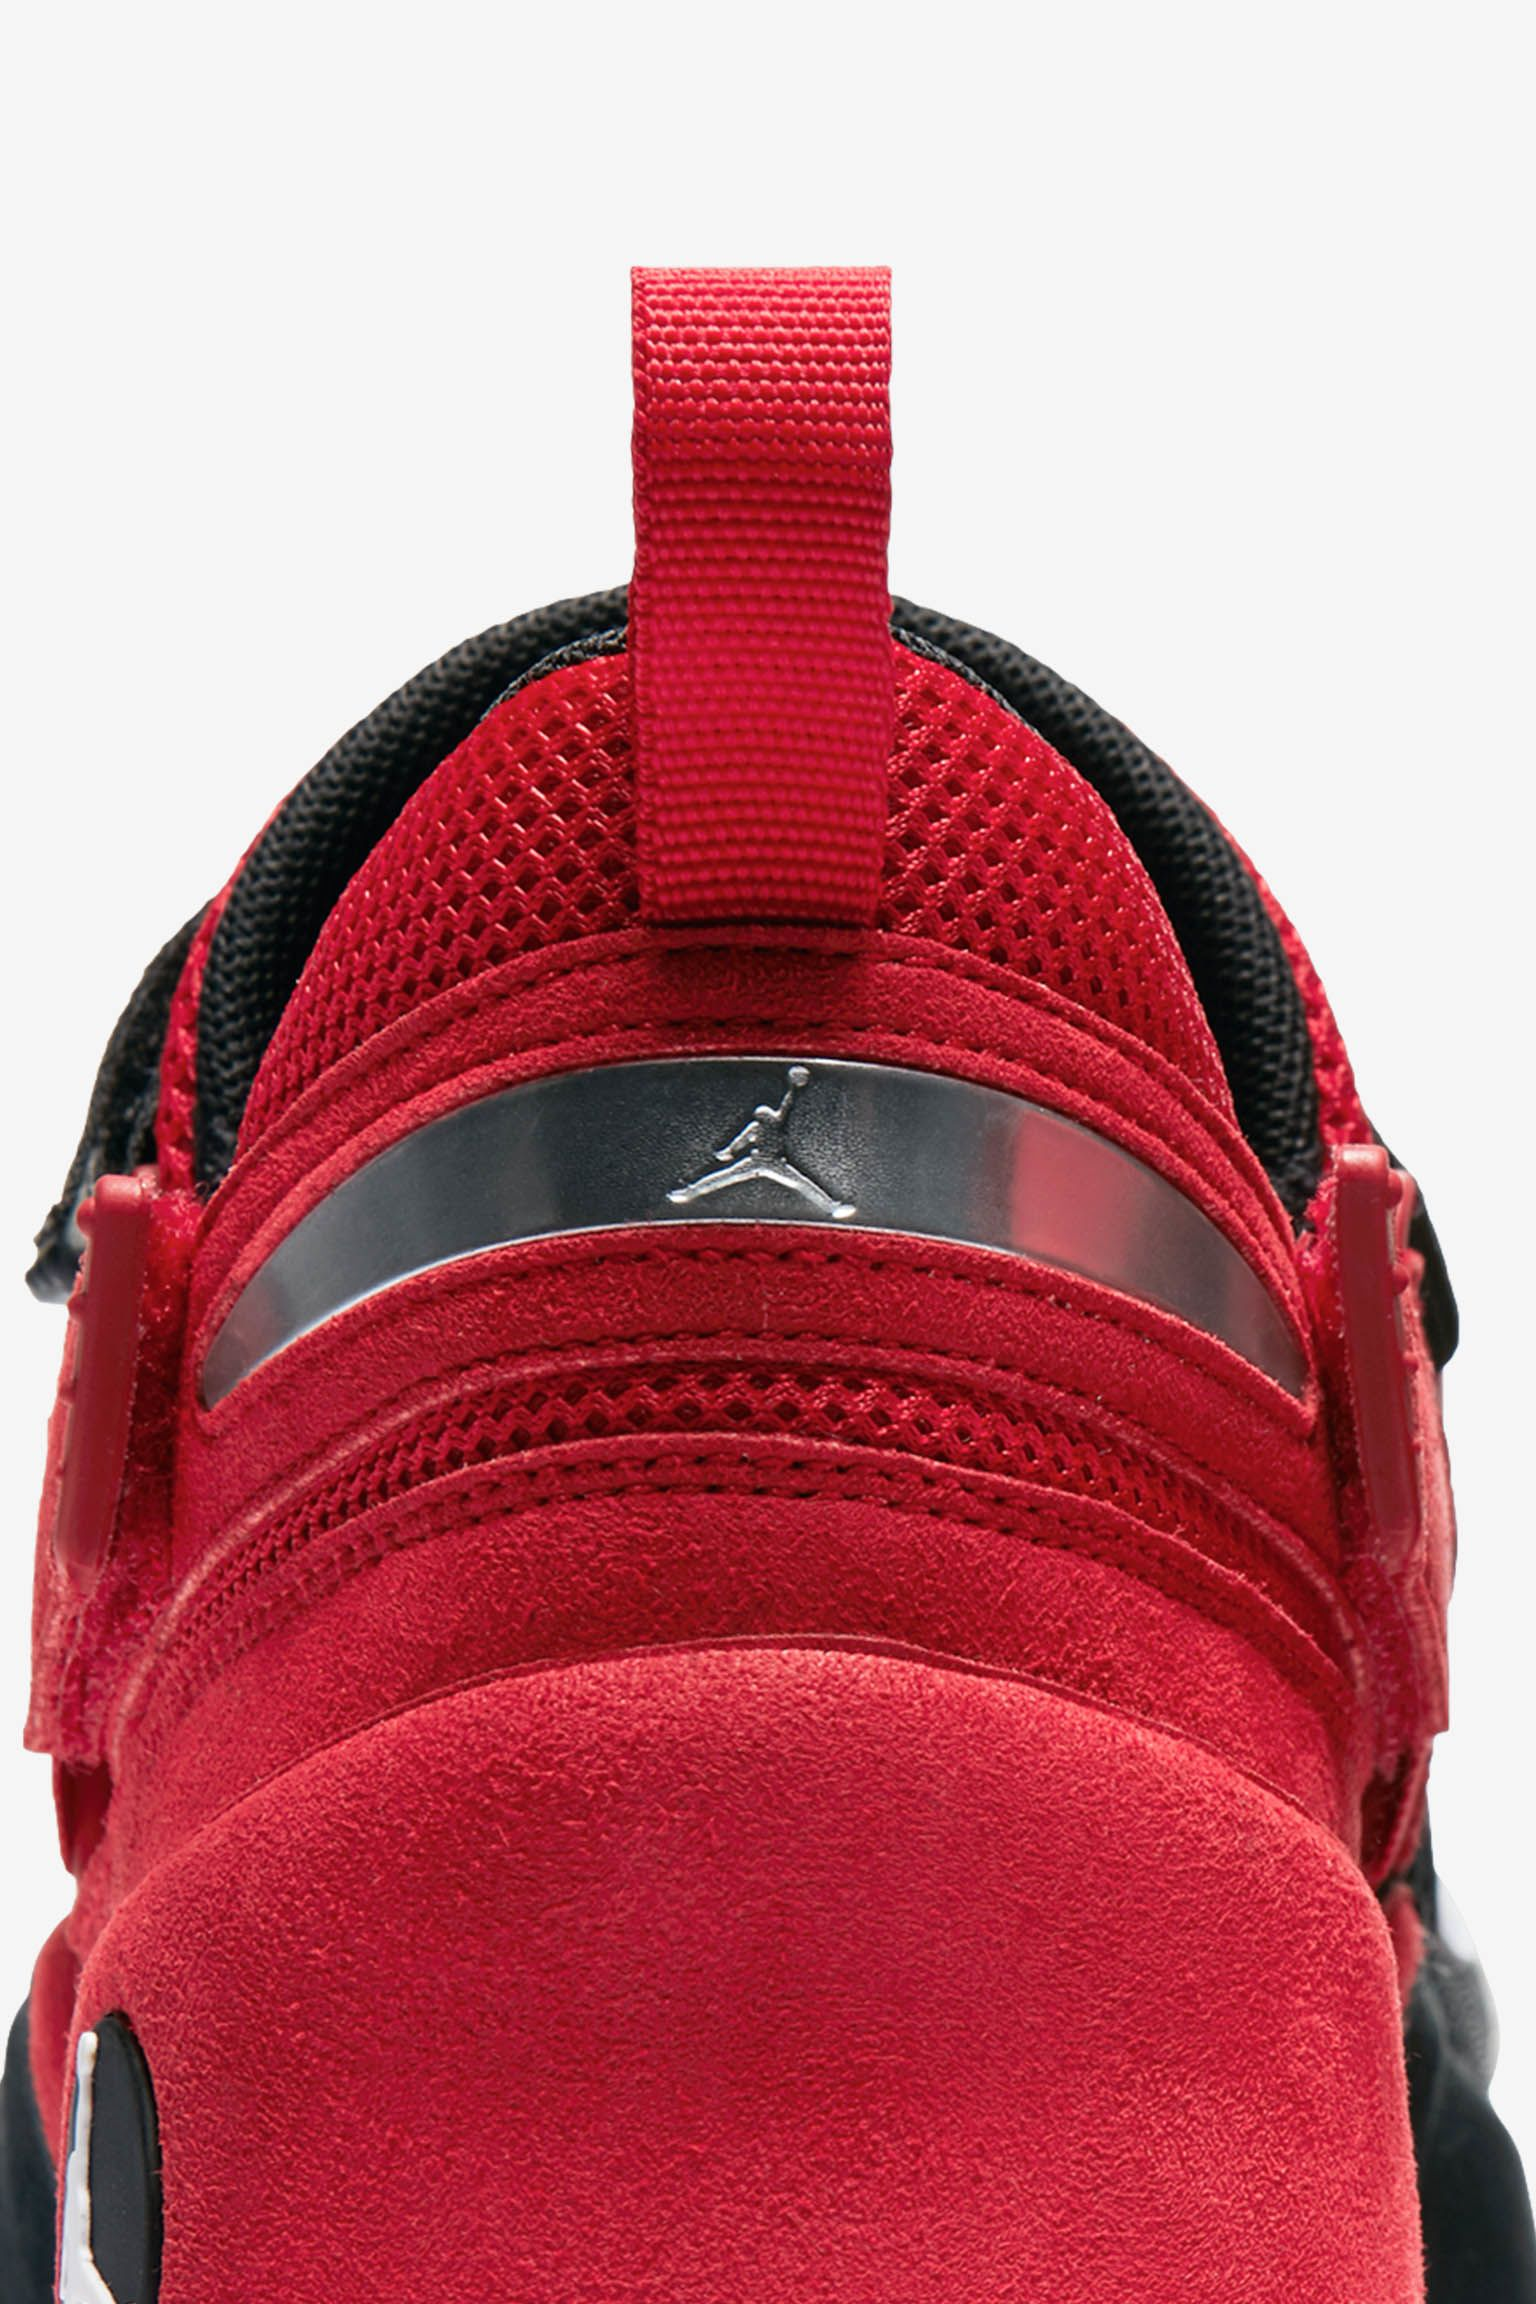 Jordan Trunner LX OG 'Black & Gym Red'